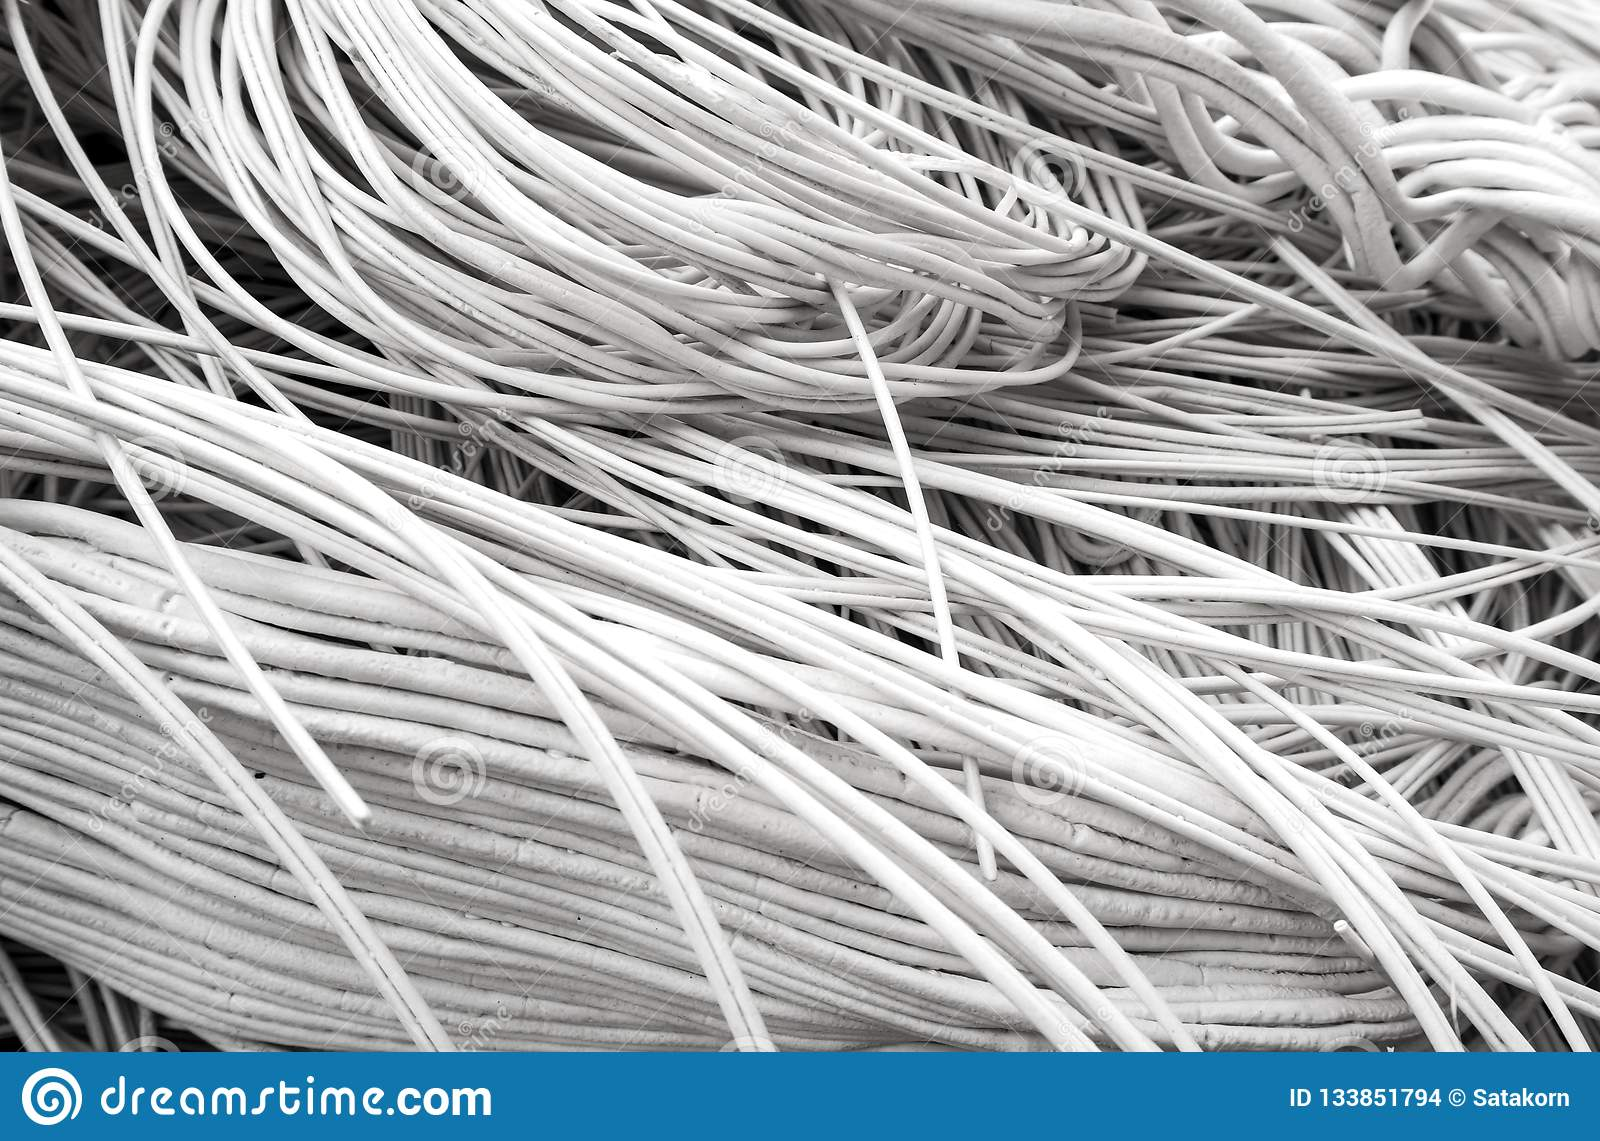 Reject Of Remelt High Density Polyethylene Products Stock Photo